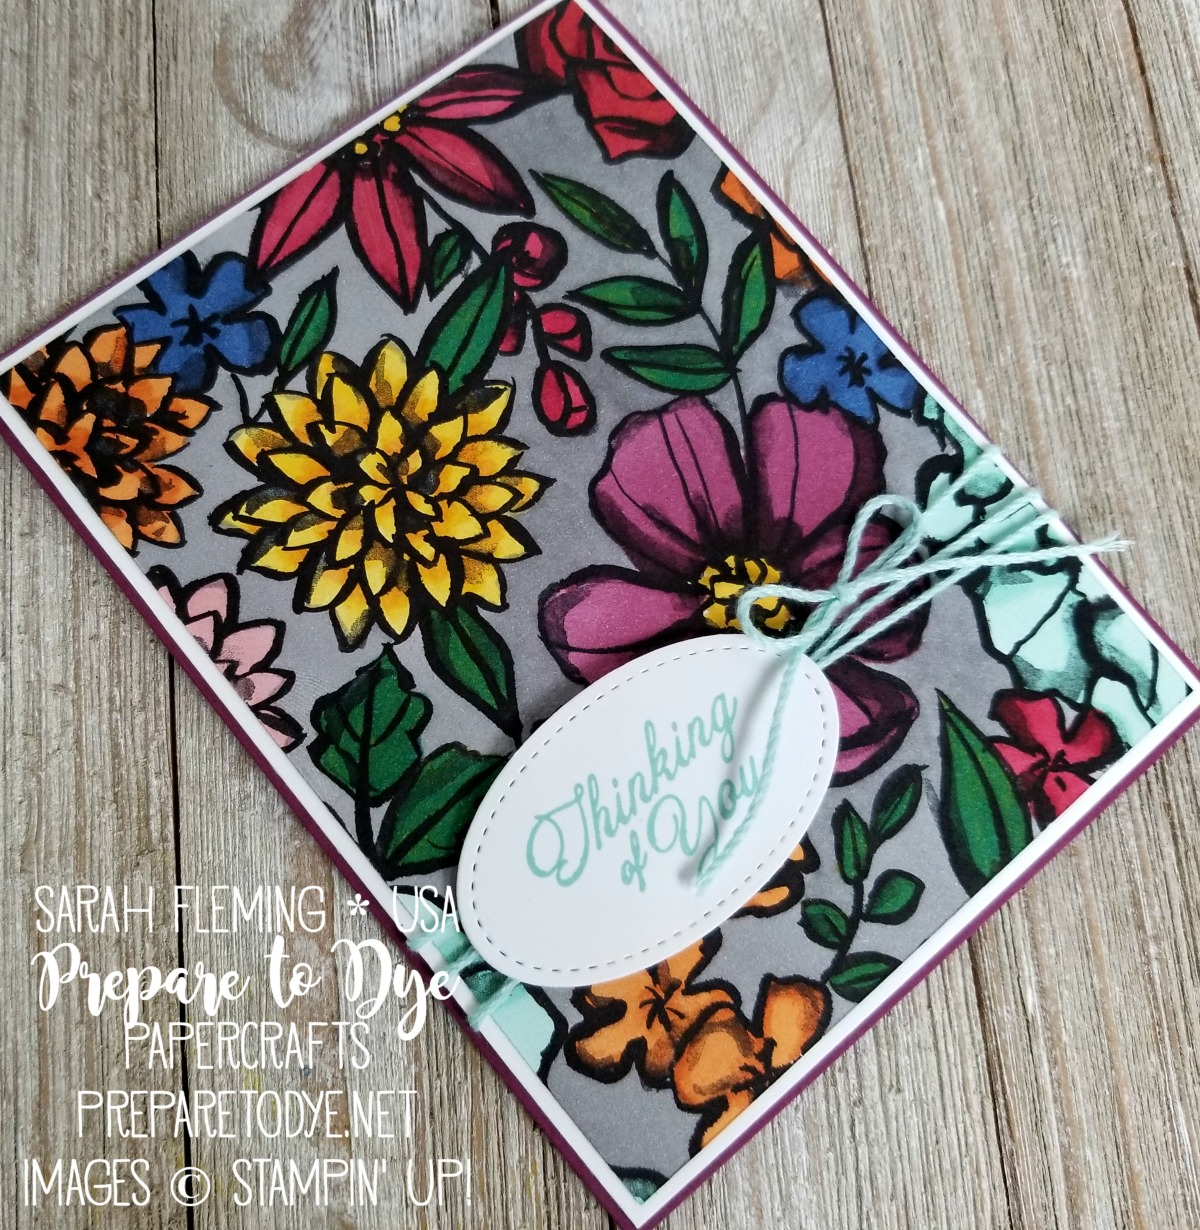 Stampin' Up! Petal Passion designer series paper with Stampin' Blends alcohol markers coloring, Heartfelt Blooms, free with $50 purchase during Sale-A-Bration - Sarah Fleming - Prepare to Dye Papercrafts